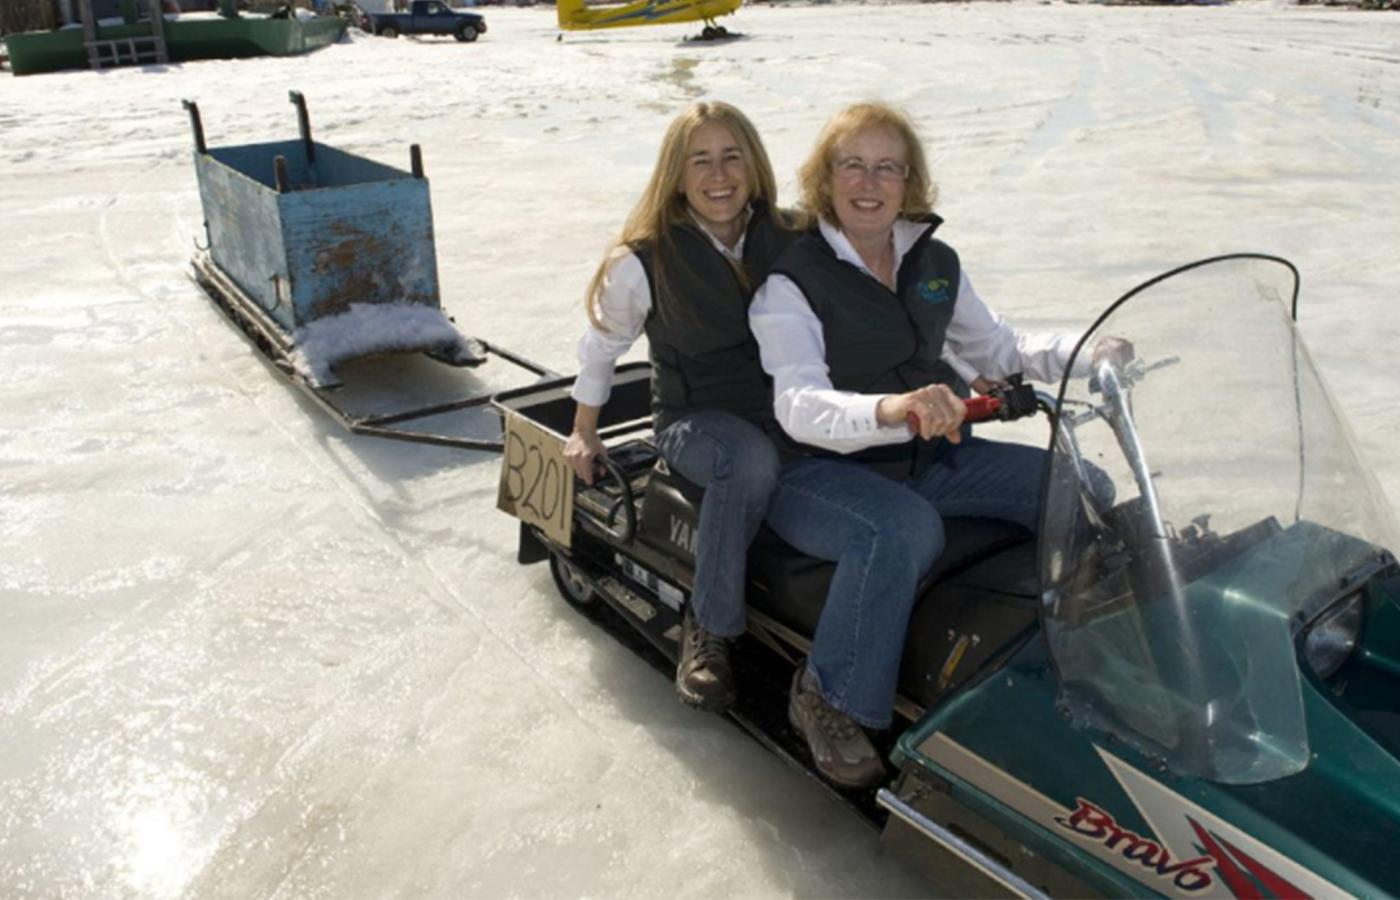 two women sitting on a ski-doo that's pulling a sleigh are similing in the winter